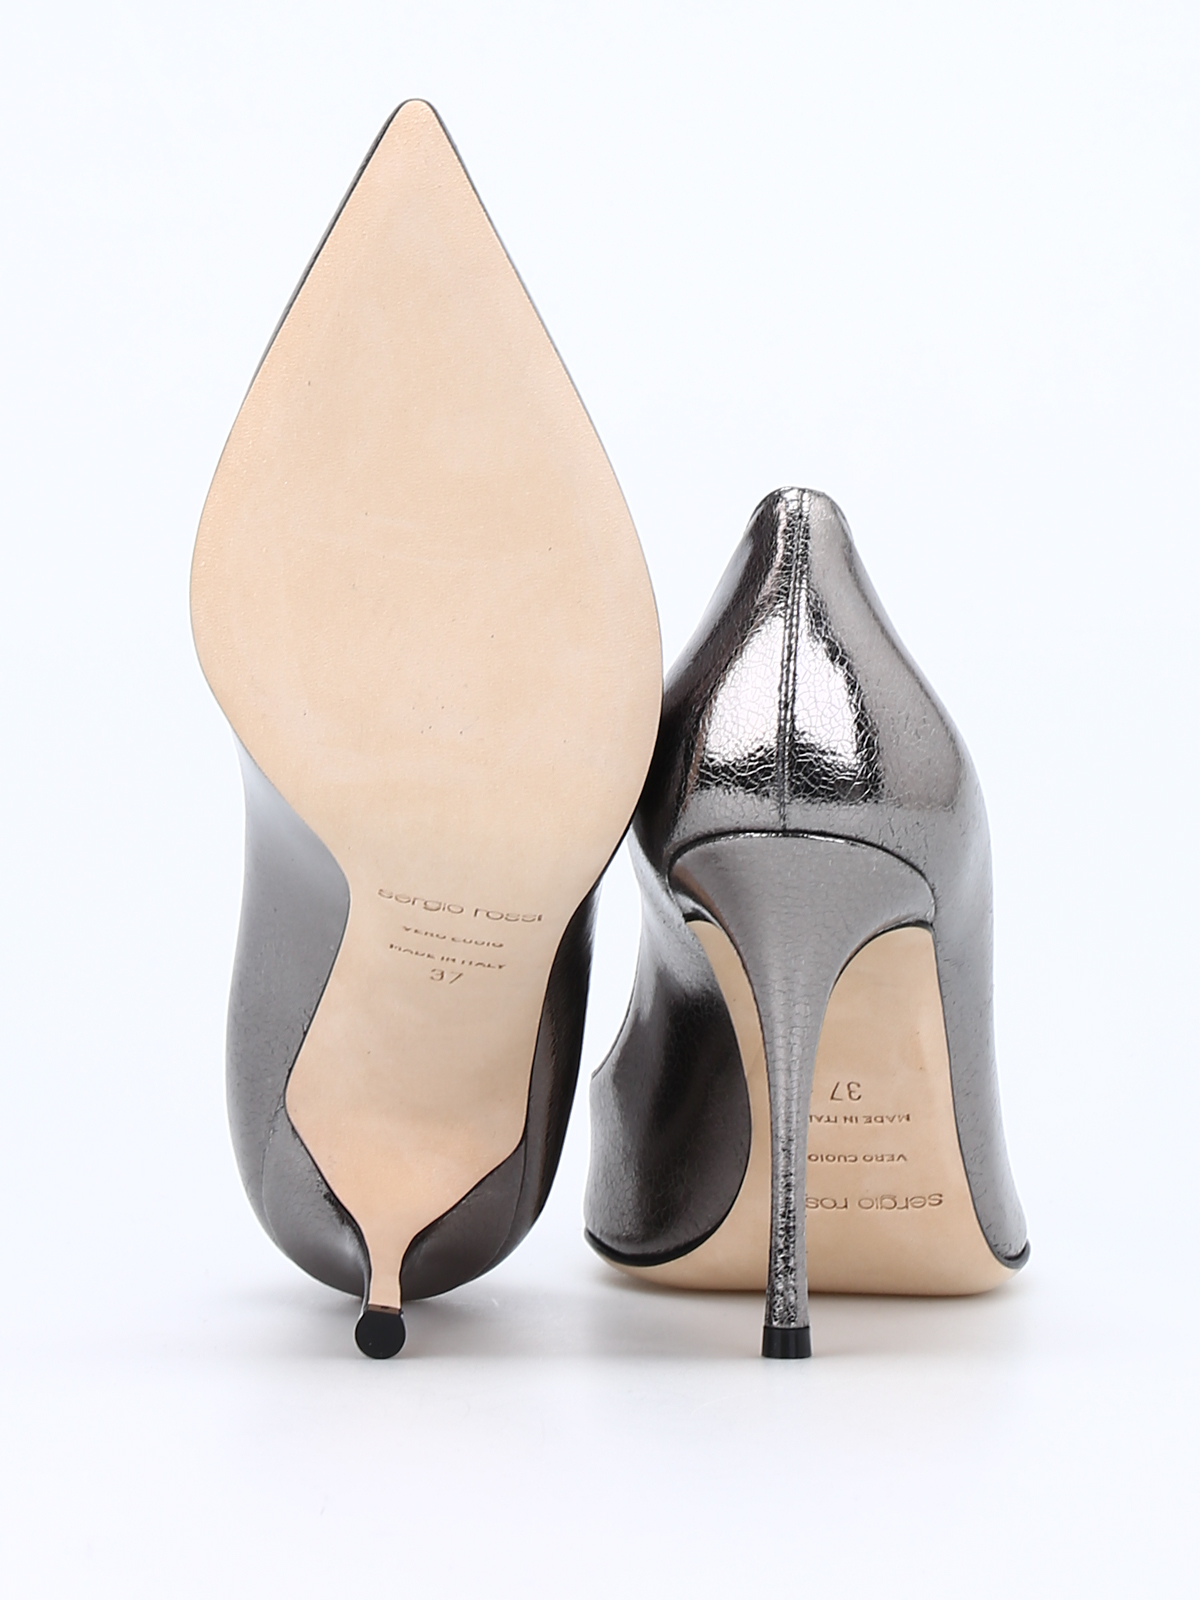 the latest 132f9 a528b sergio-rossi-buy-online-godiva-crackle-leather-pumps-00000112502f00s015.jpg